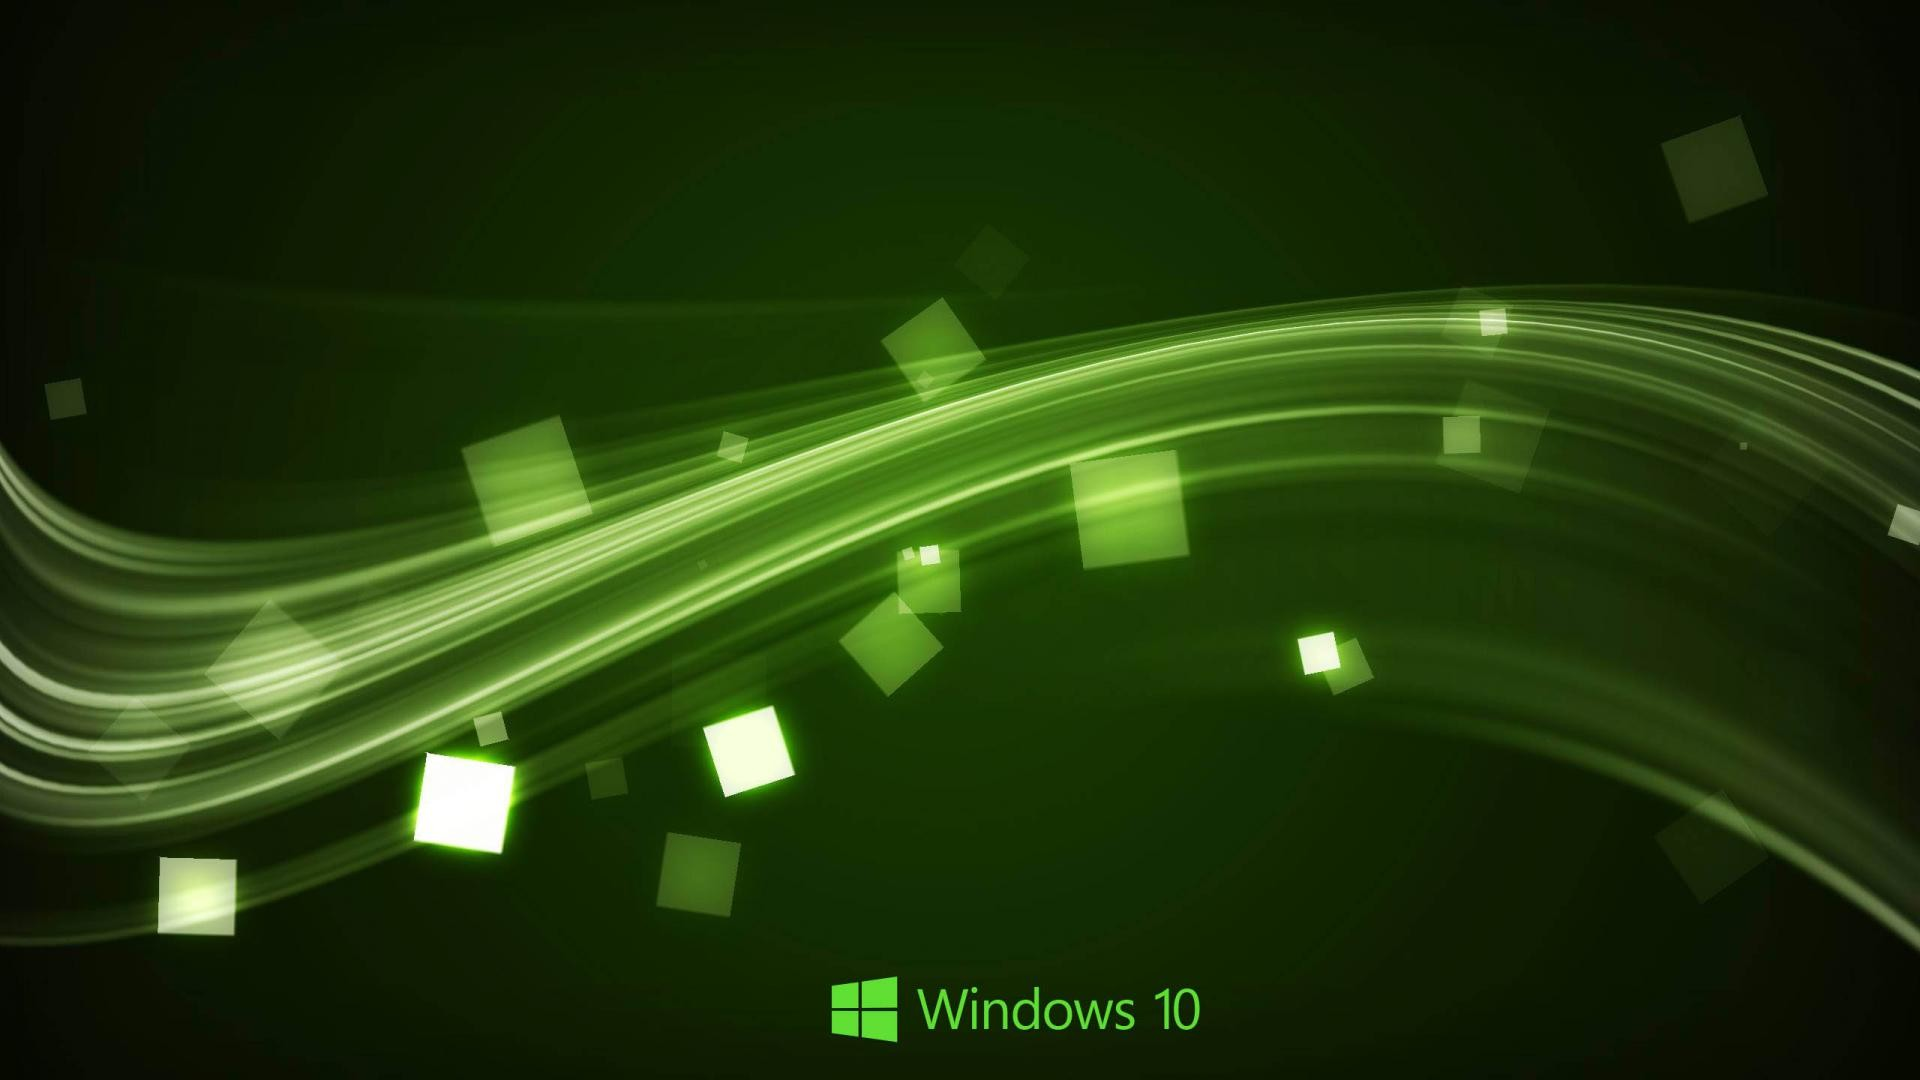 Windows 10 Wallpaper in Abstract Green Waves | HD Wallpapers for Free